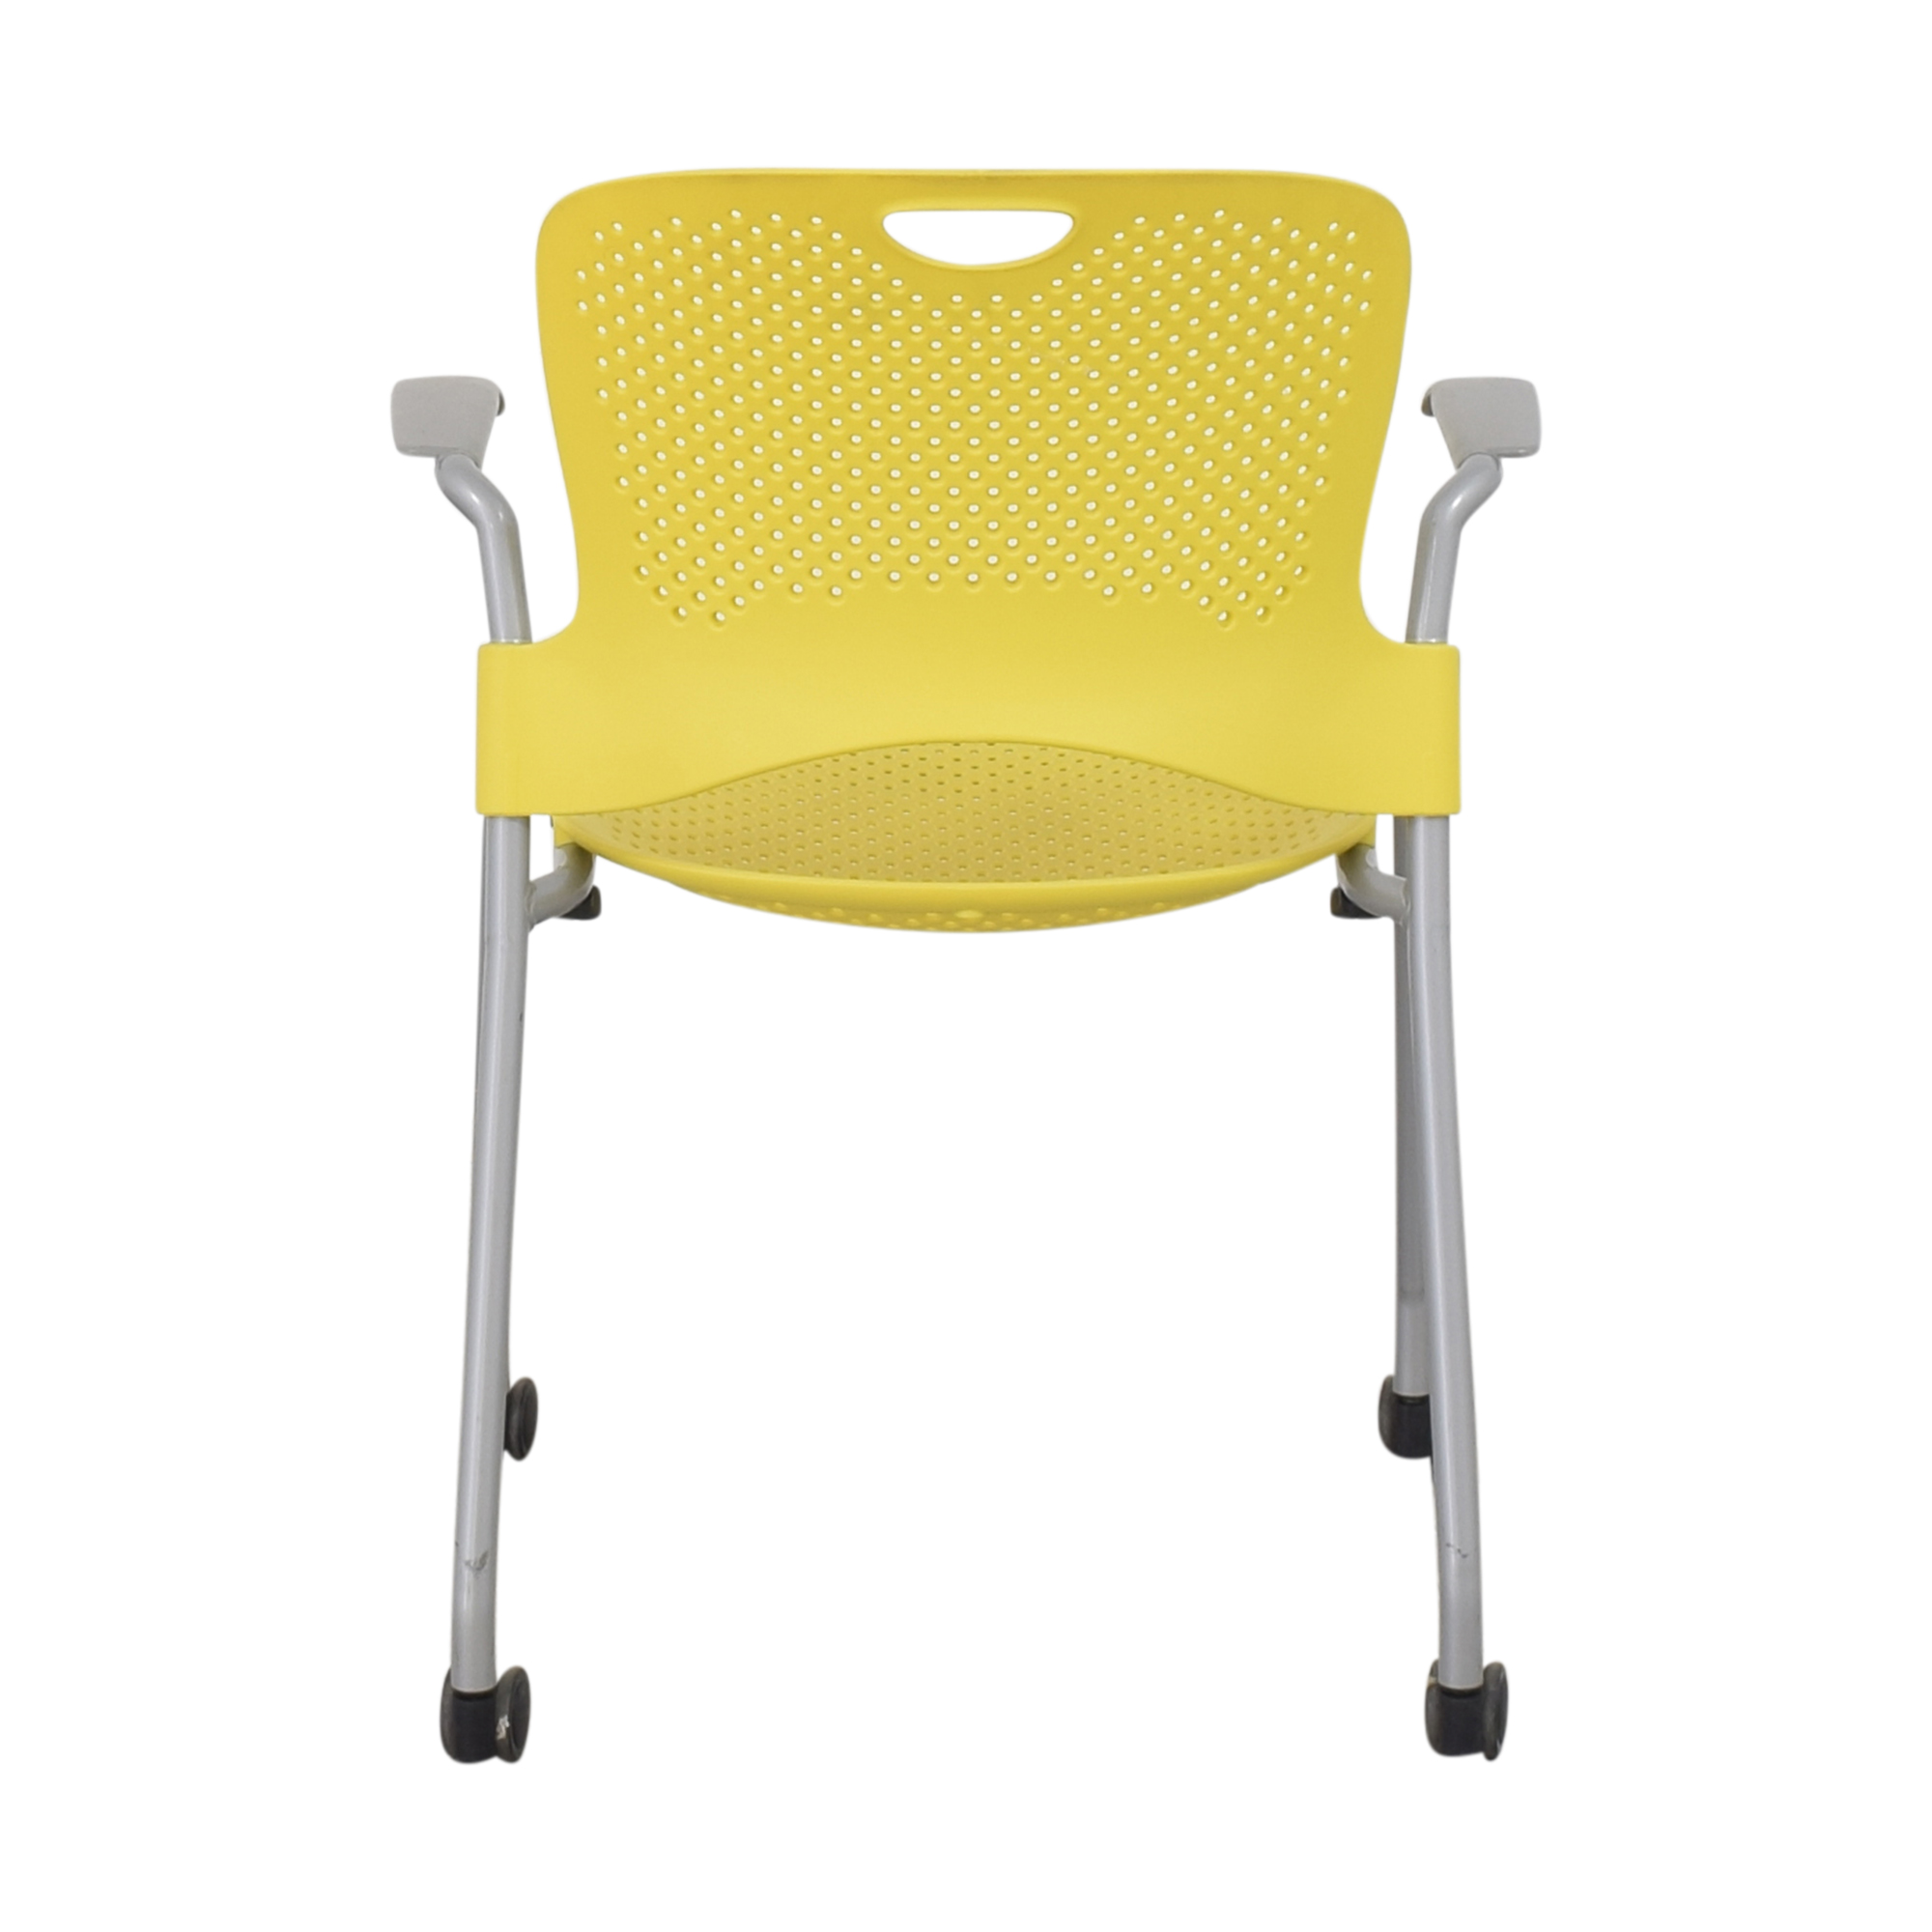 Herman Miller Caper Stacking Chair / Chairs